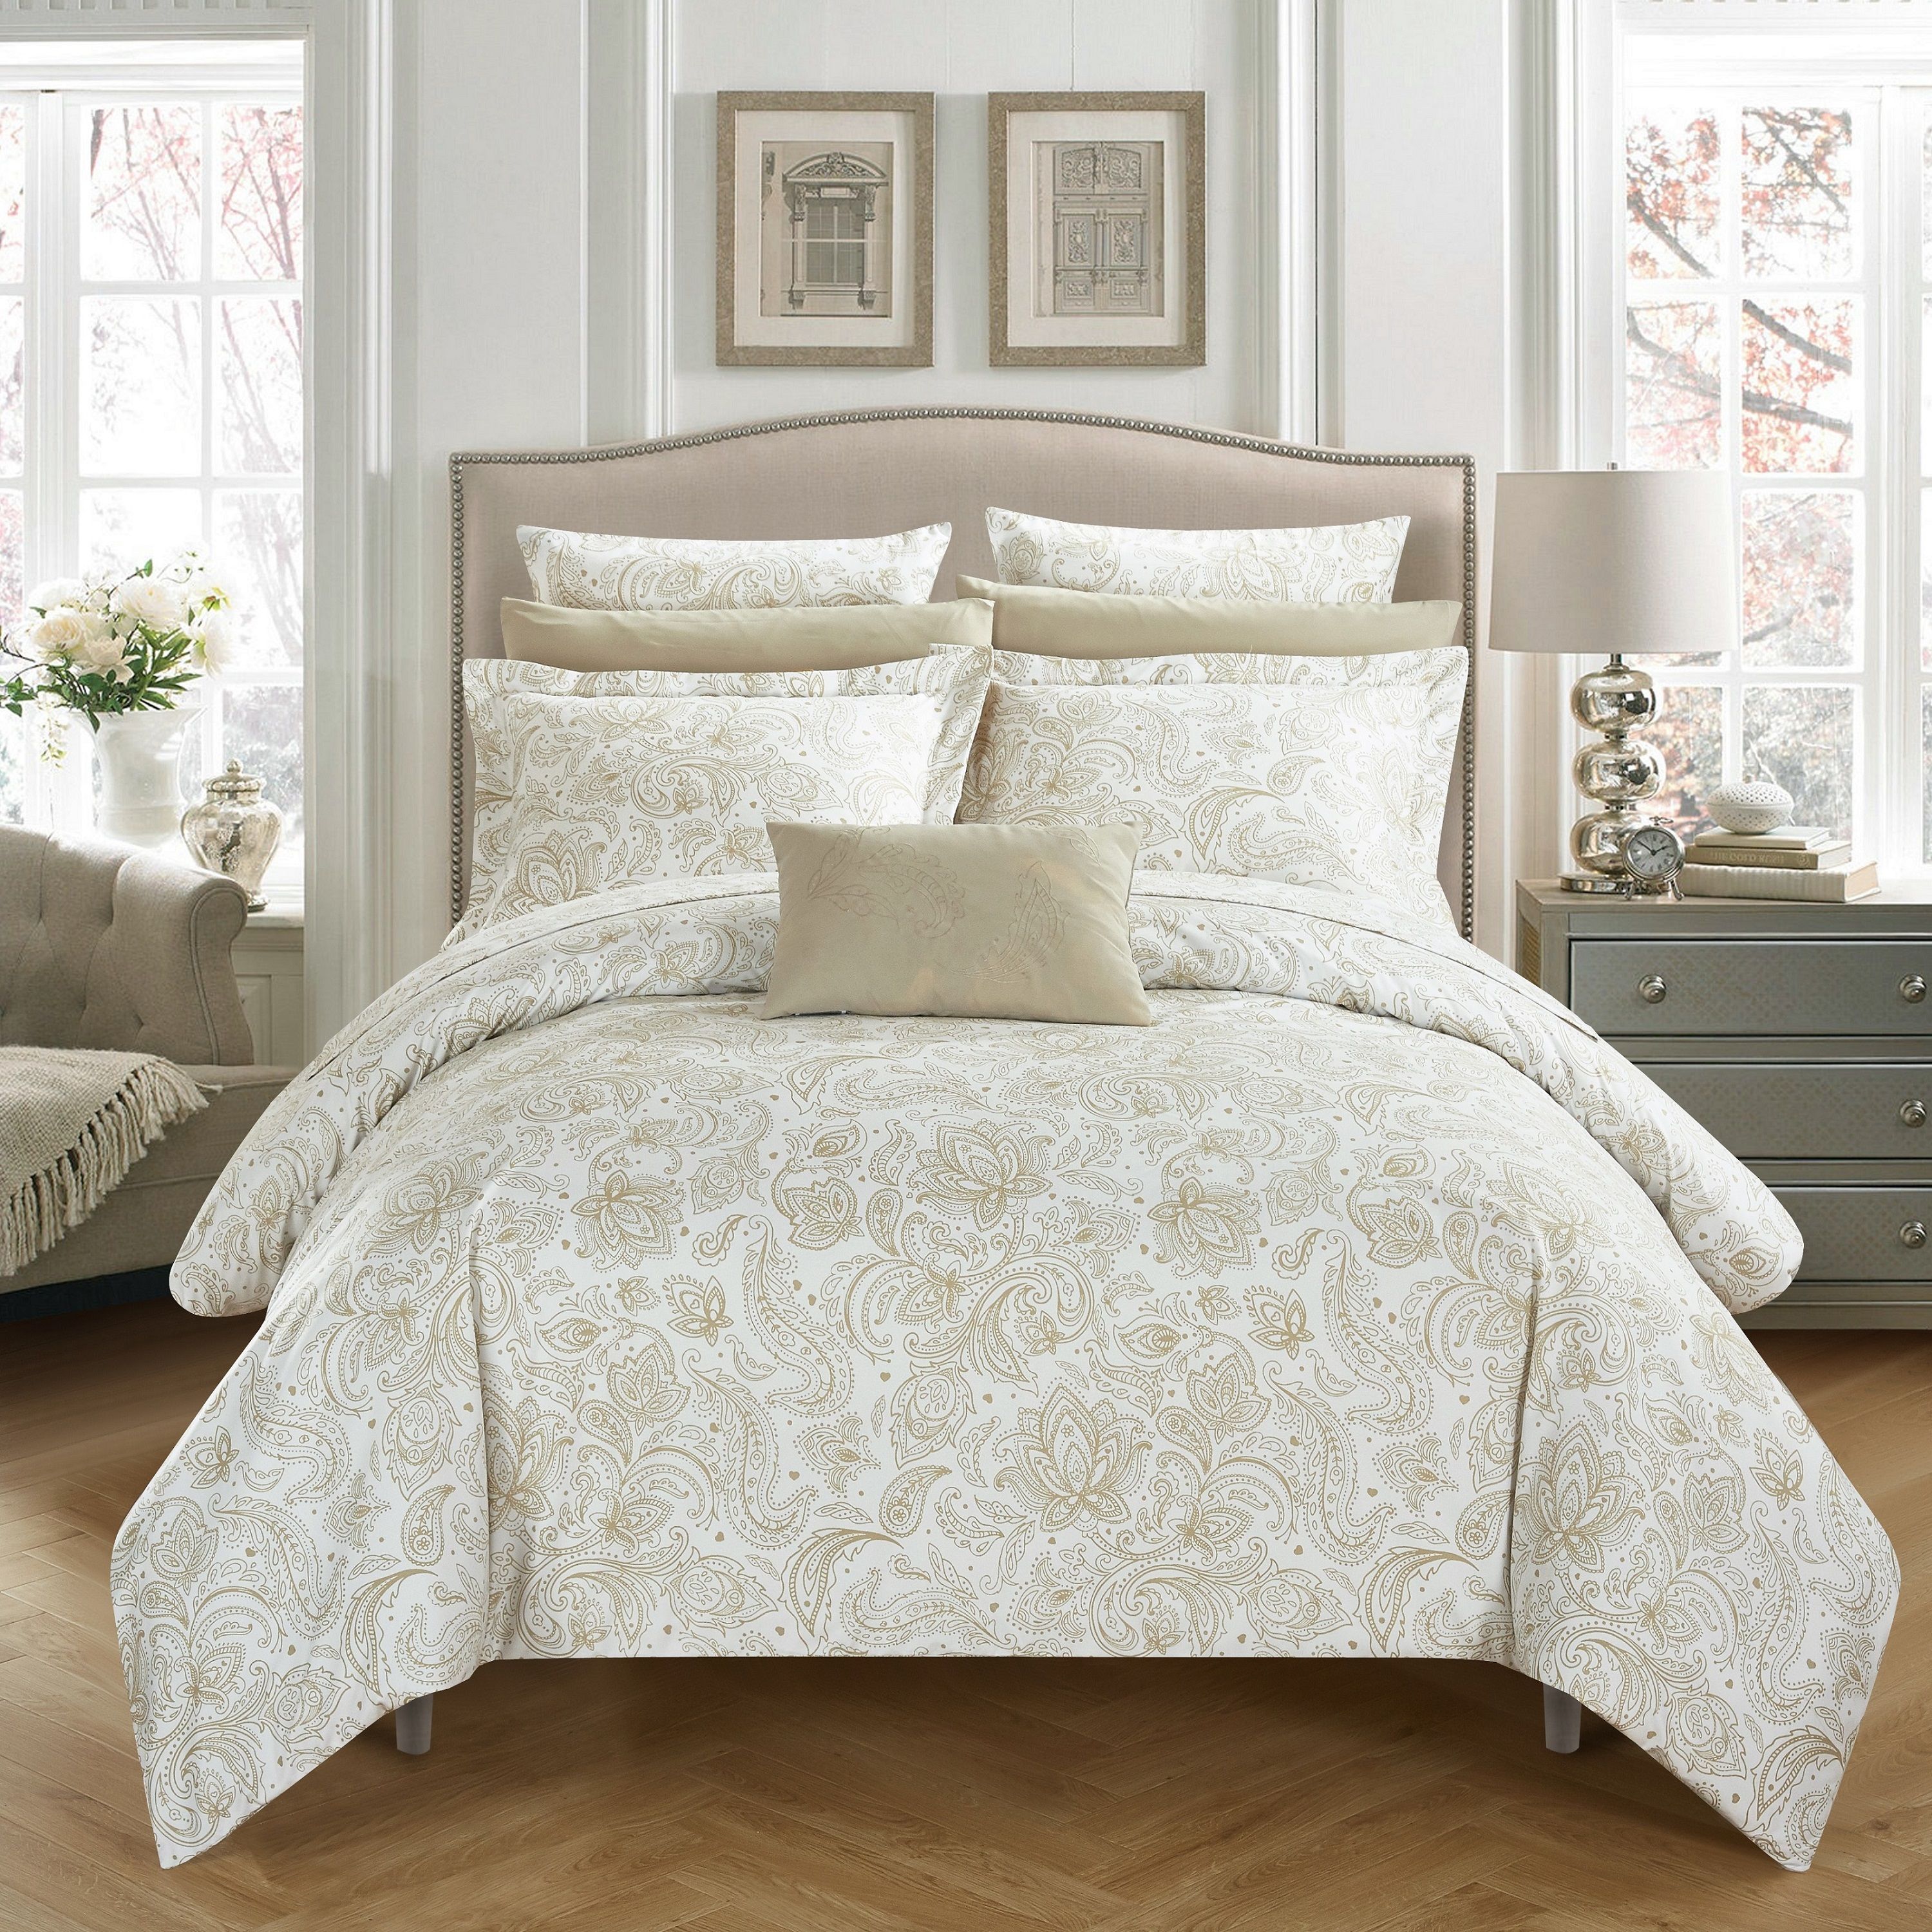 Chic Home 10-Piece Newark Park Super Soft Microfiber Vintage Paisley pattern Printed two tone Bed In a Bag Duvet Set Brick with coordinating sheet and 2 bonus pillow cases.